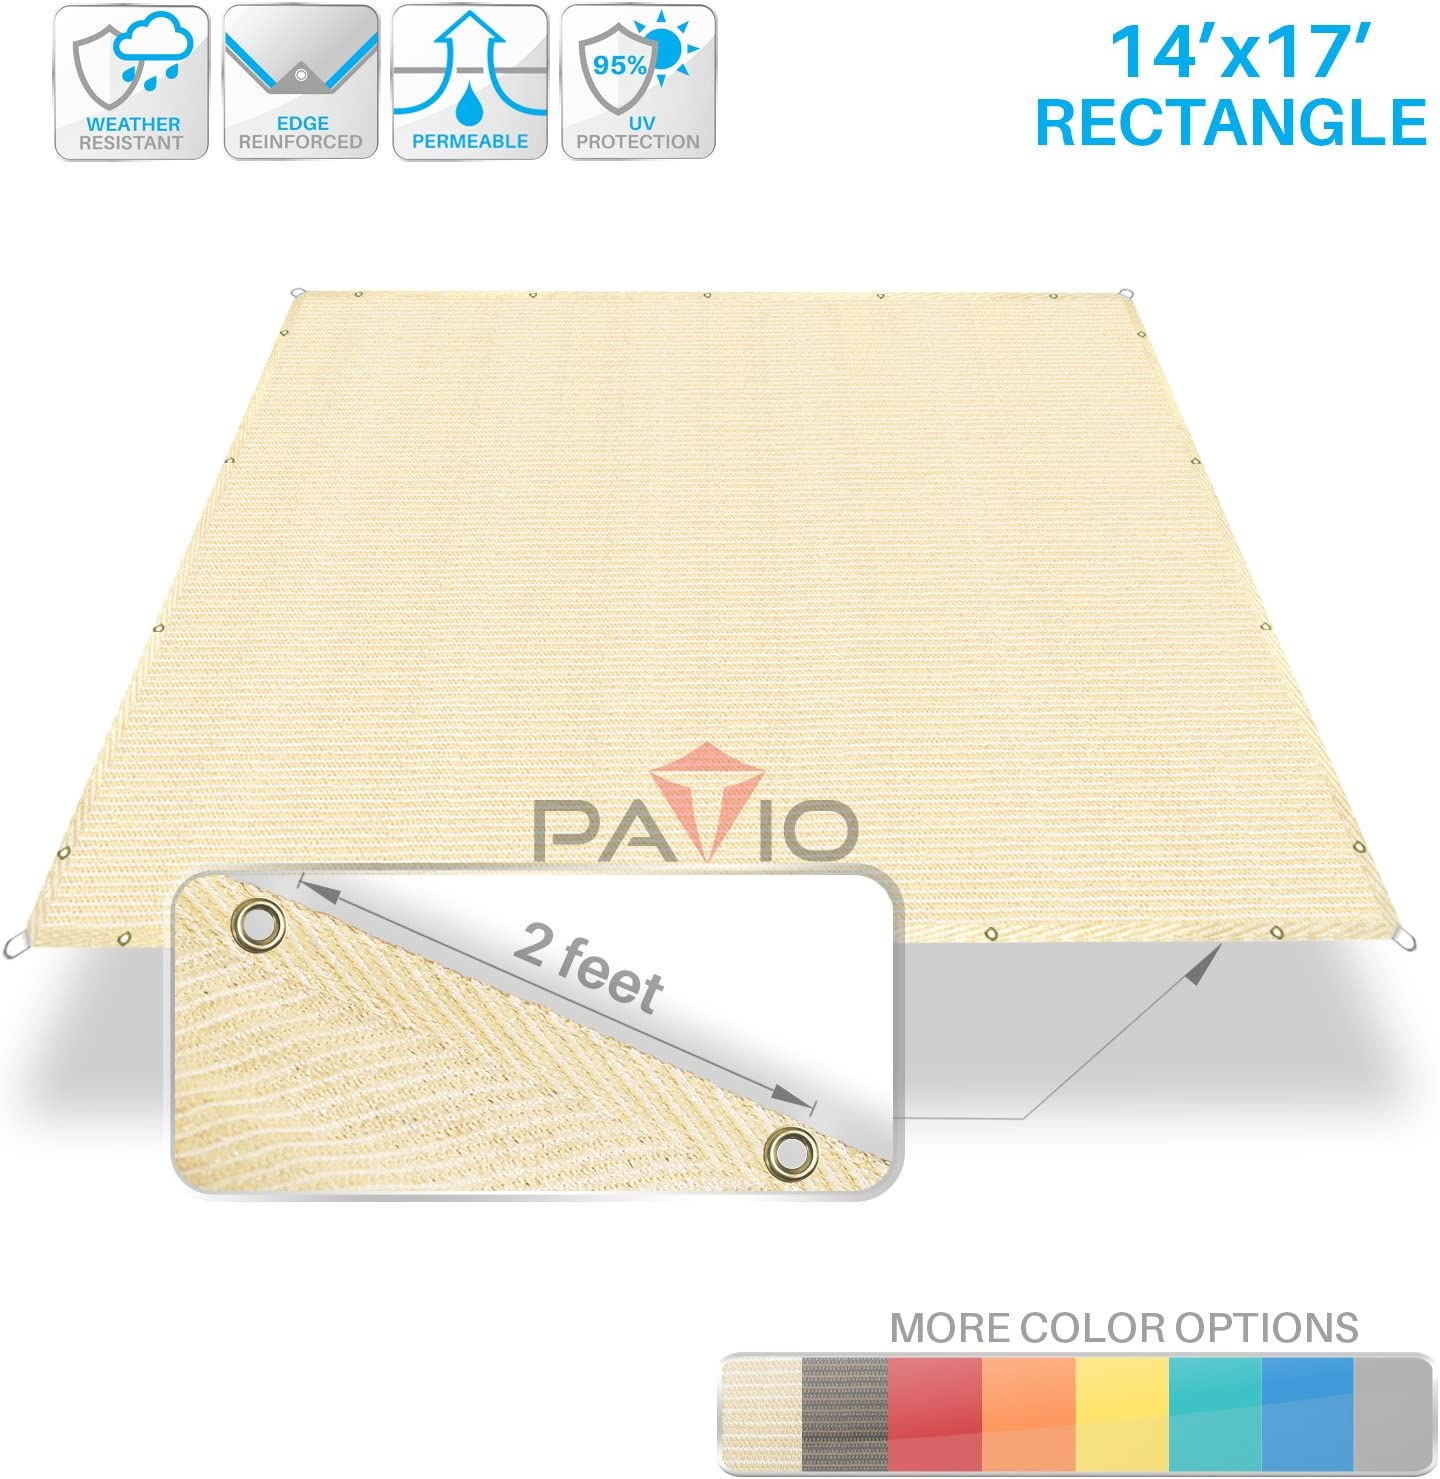 Patio Paradise - Vela de sombra con bordes rectos: Amazon.es: Jardín